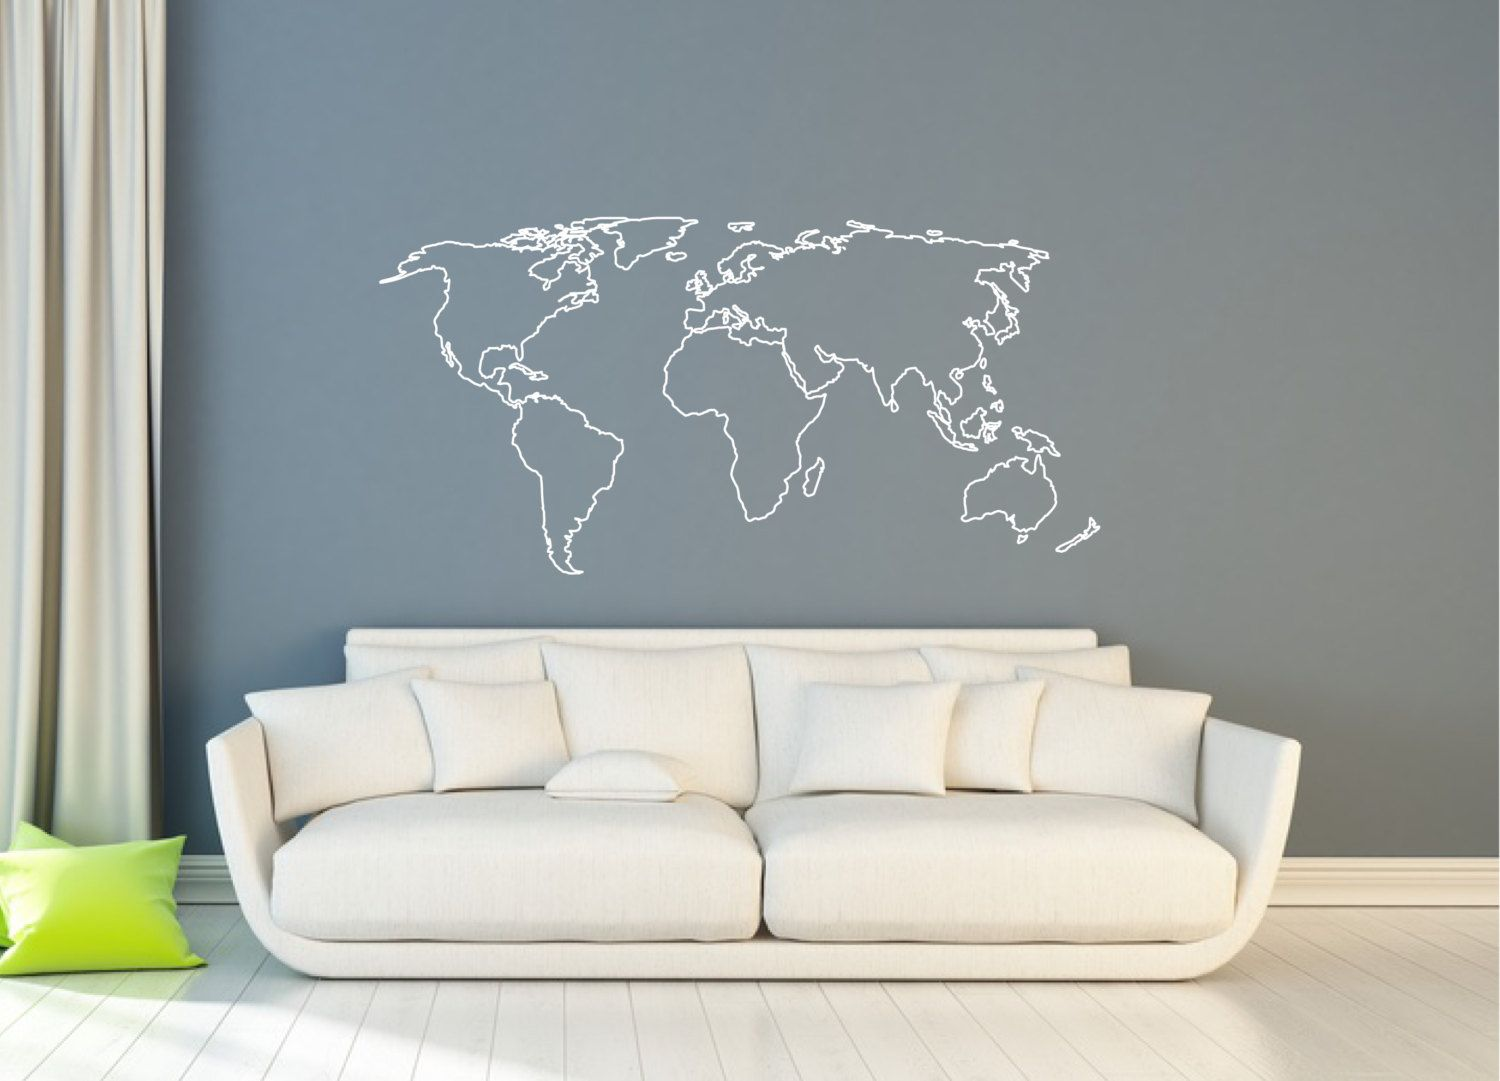 World map wall sticker design map of countries wall decal wall world map wall sticker design map of countries wall decal wall travel decor adventure wall art with location pins white grey black by gumiabroncs Image collections